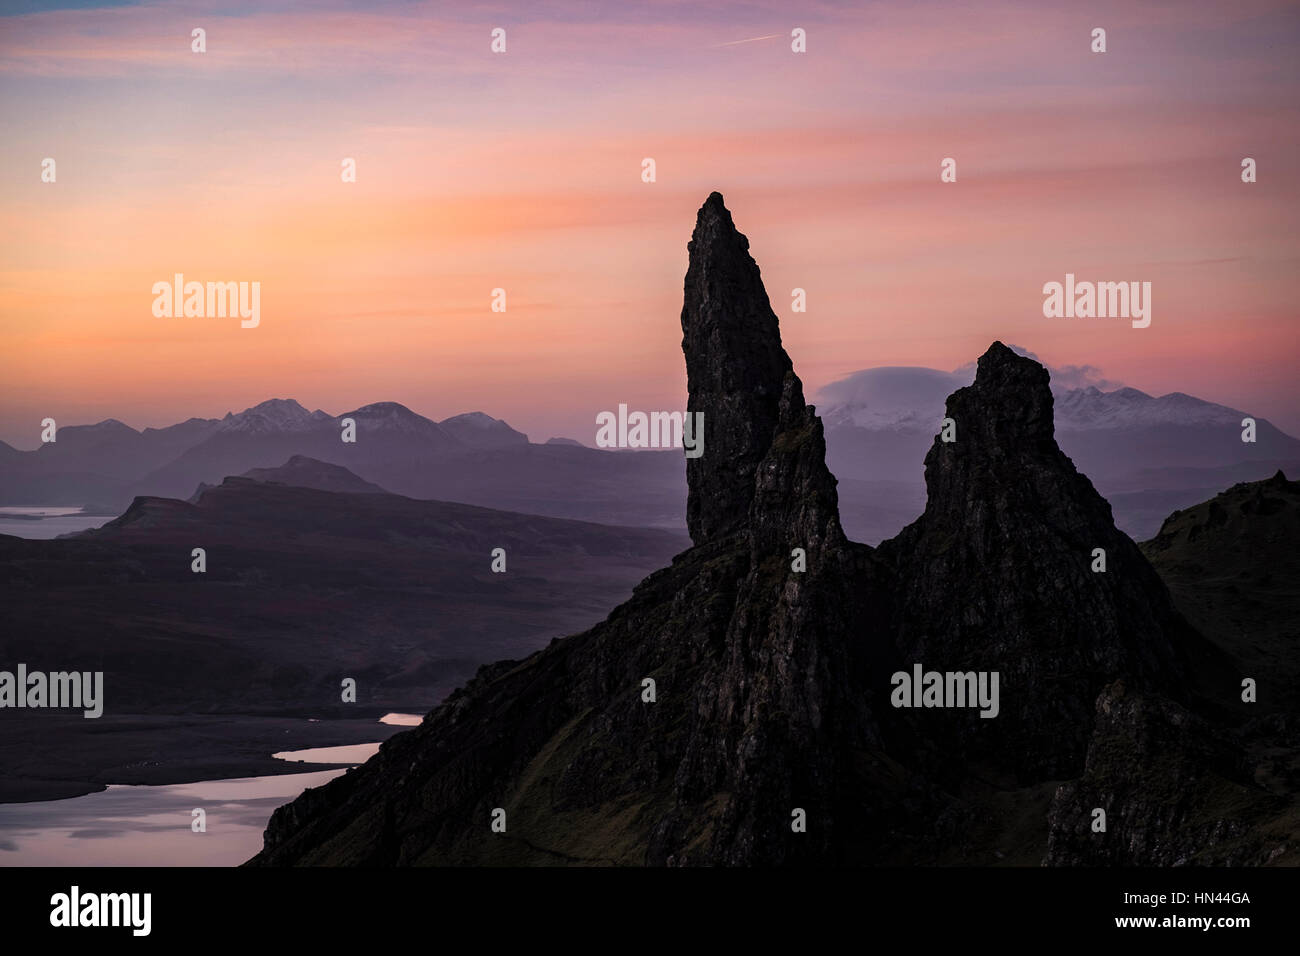 A pre dawn sky filled with oranges and pinks over the Old Man of Storr on the Isle of Skye. Stock Photo